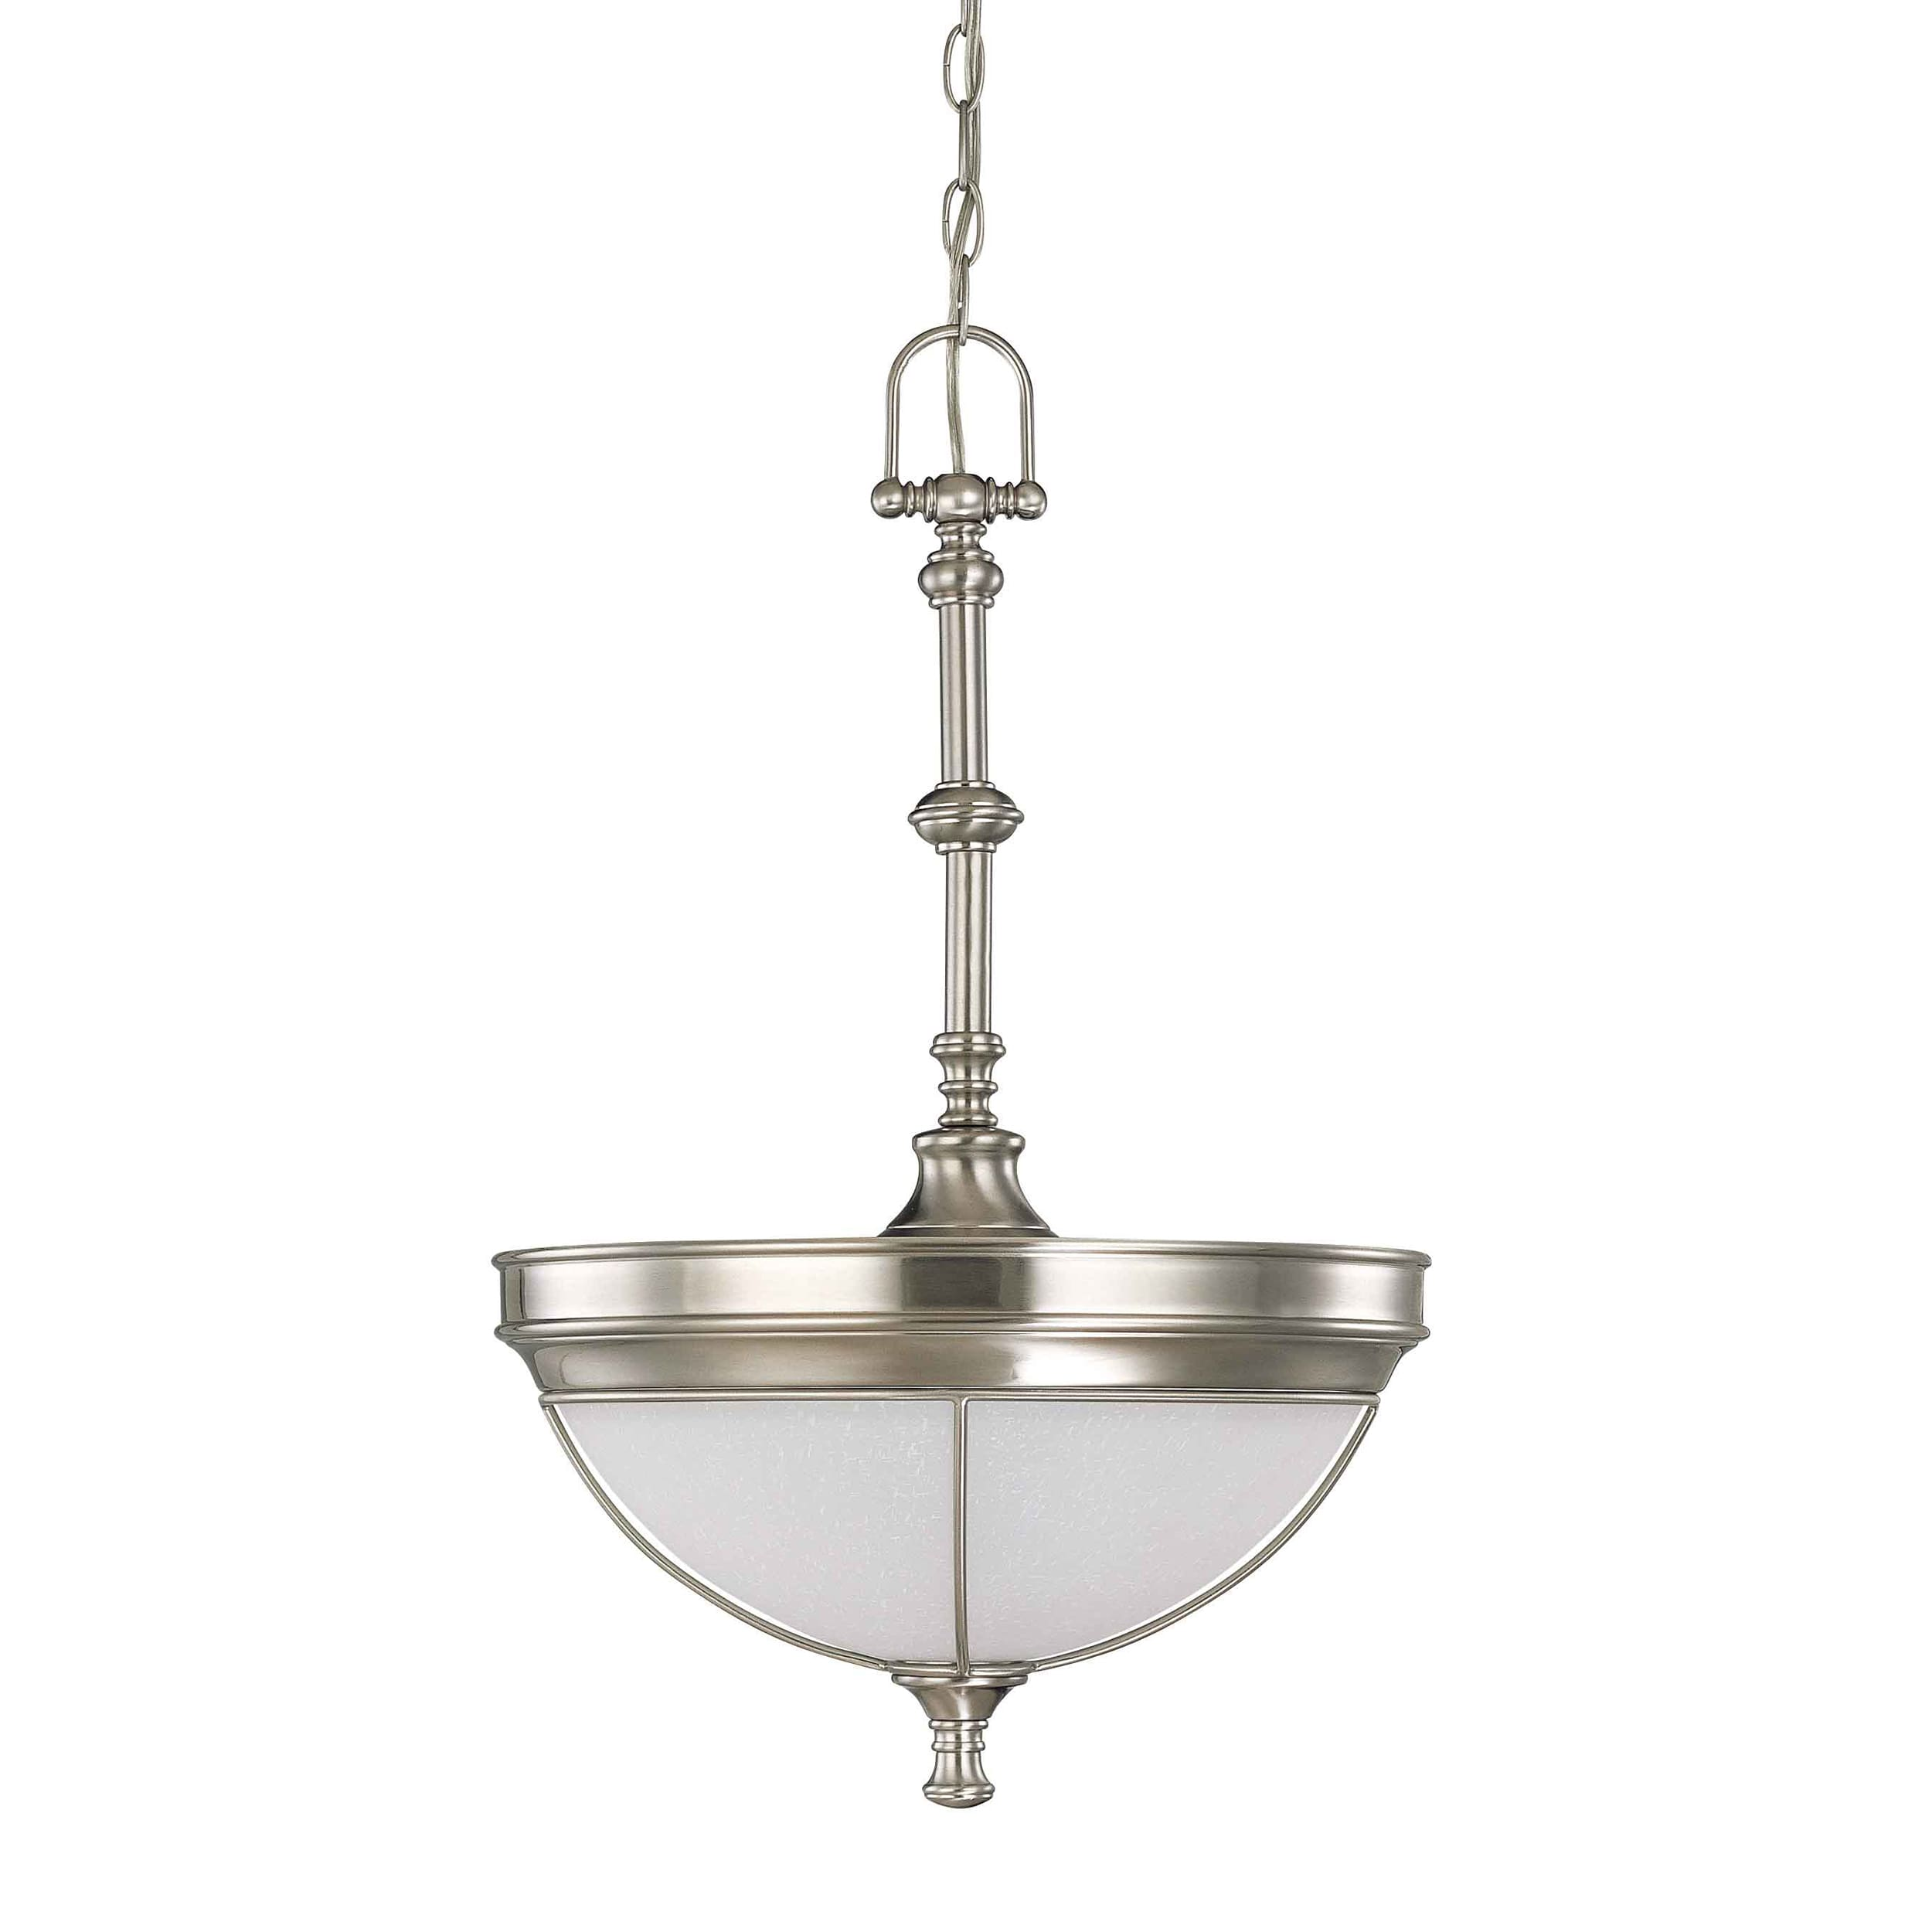 Salem 3 Light Brushed Nickel With Frosted Linen Glass Pendant